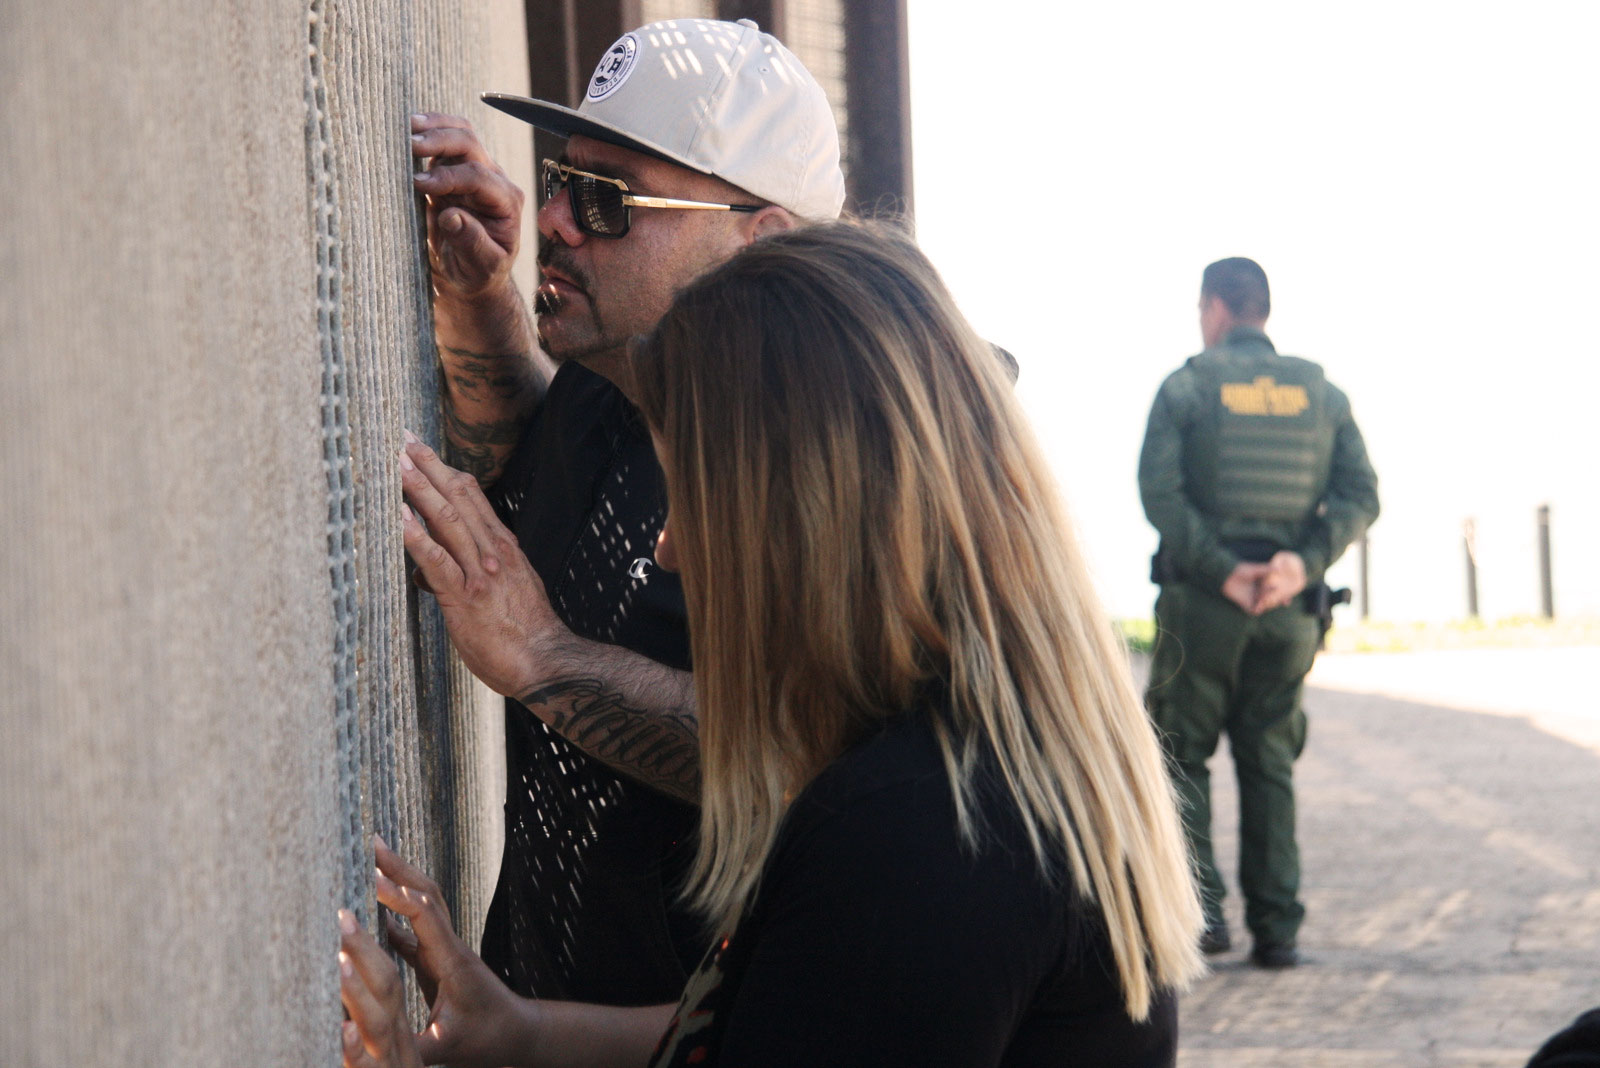 Saul Garcia and his cousin, Claudi Burrola, visit family members who aren't allowed entry into the U.S. Benjamin Preston—The Drive